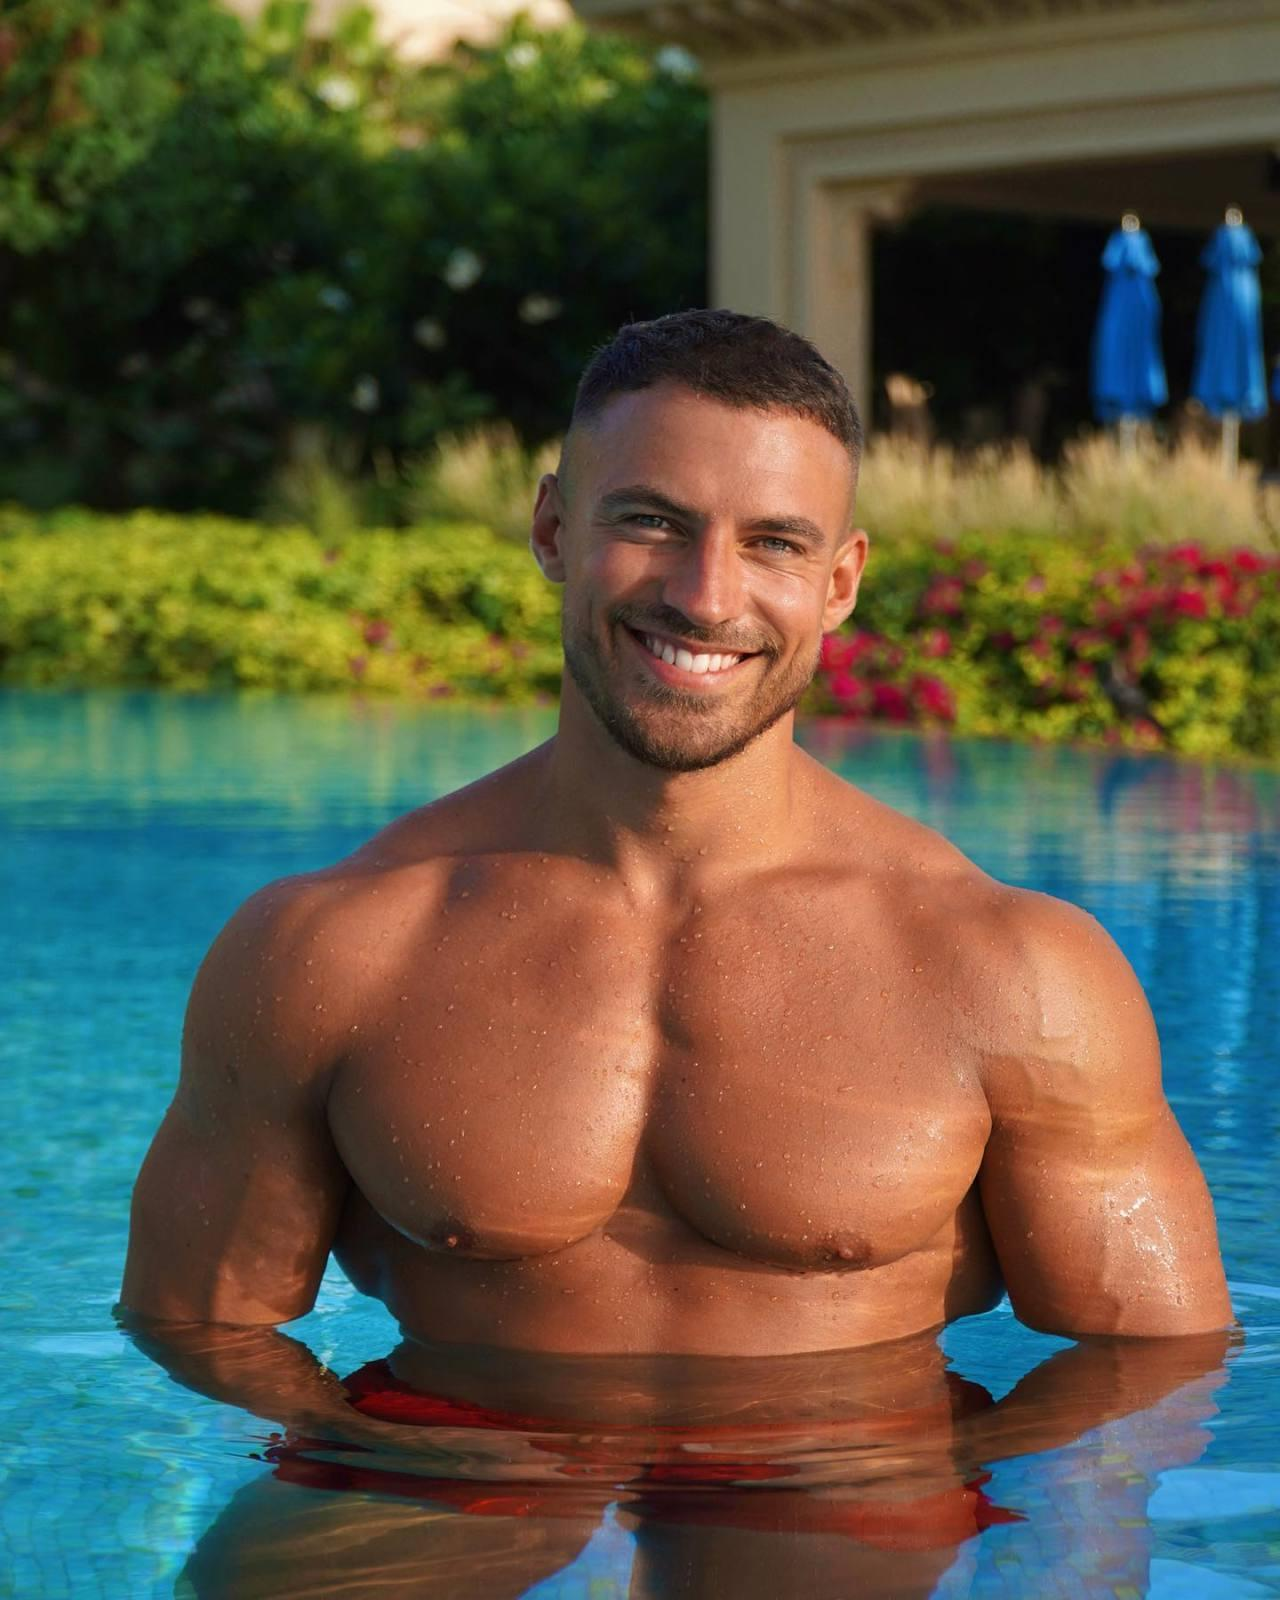 sexy-handsome-masculine-daddy-mike-thurston-muscle-pecs-wet-body-pool-hunk-smiling